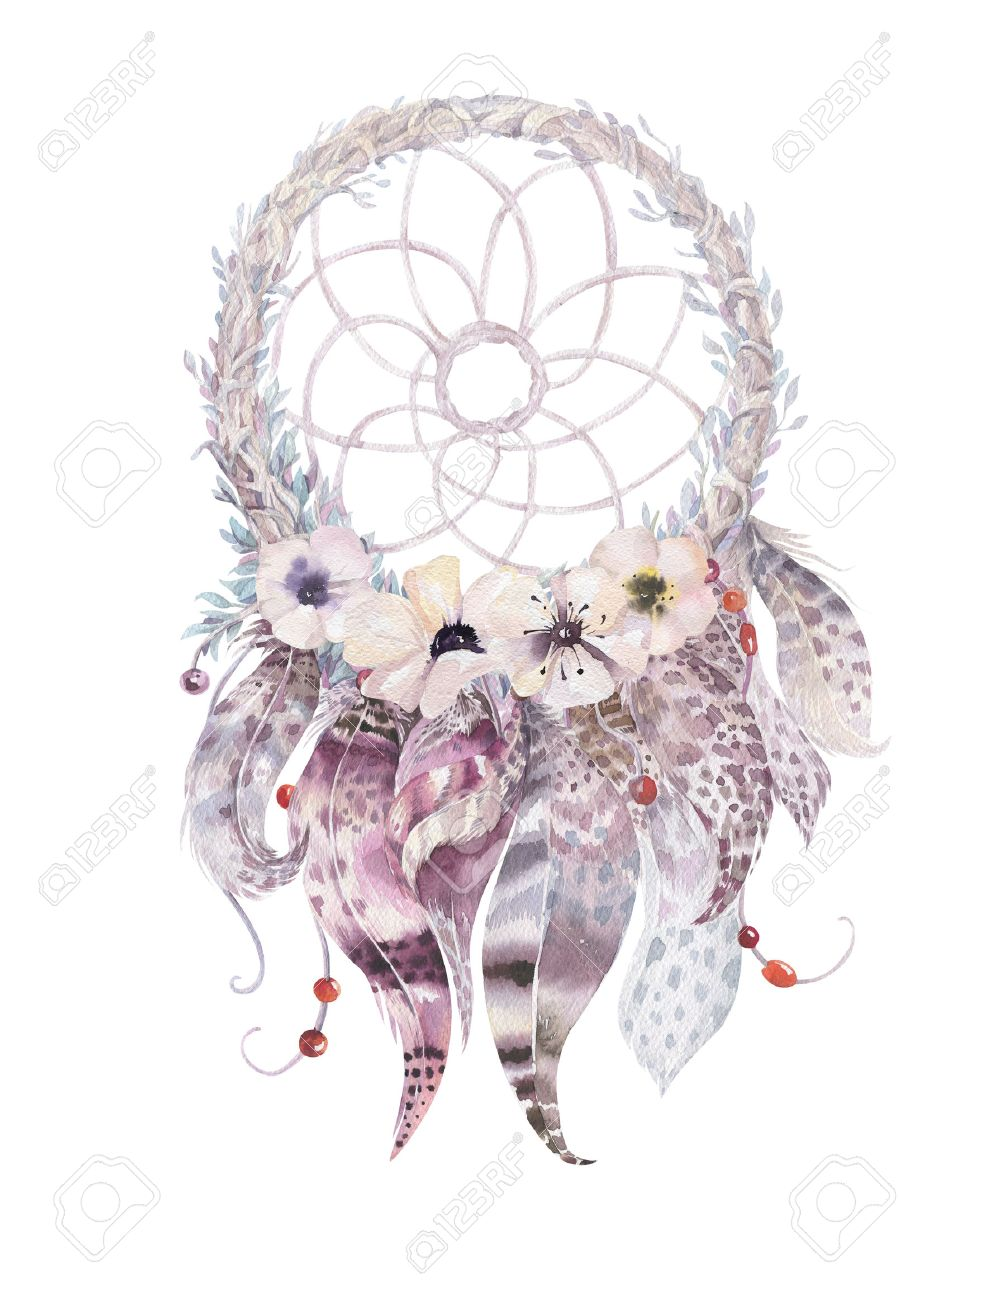 Isolated Watercolor Decoration Bohemian Dreamcatcher Boho Feathers Native Dream Chic Design Mystery Etnic